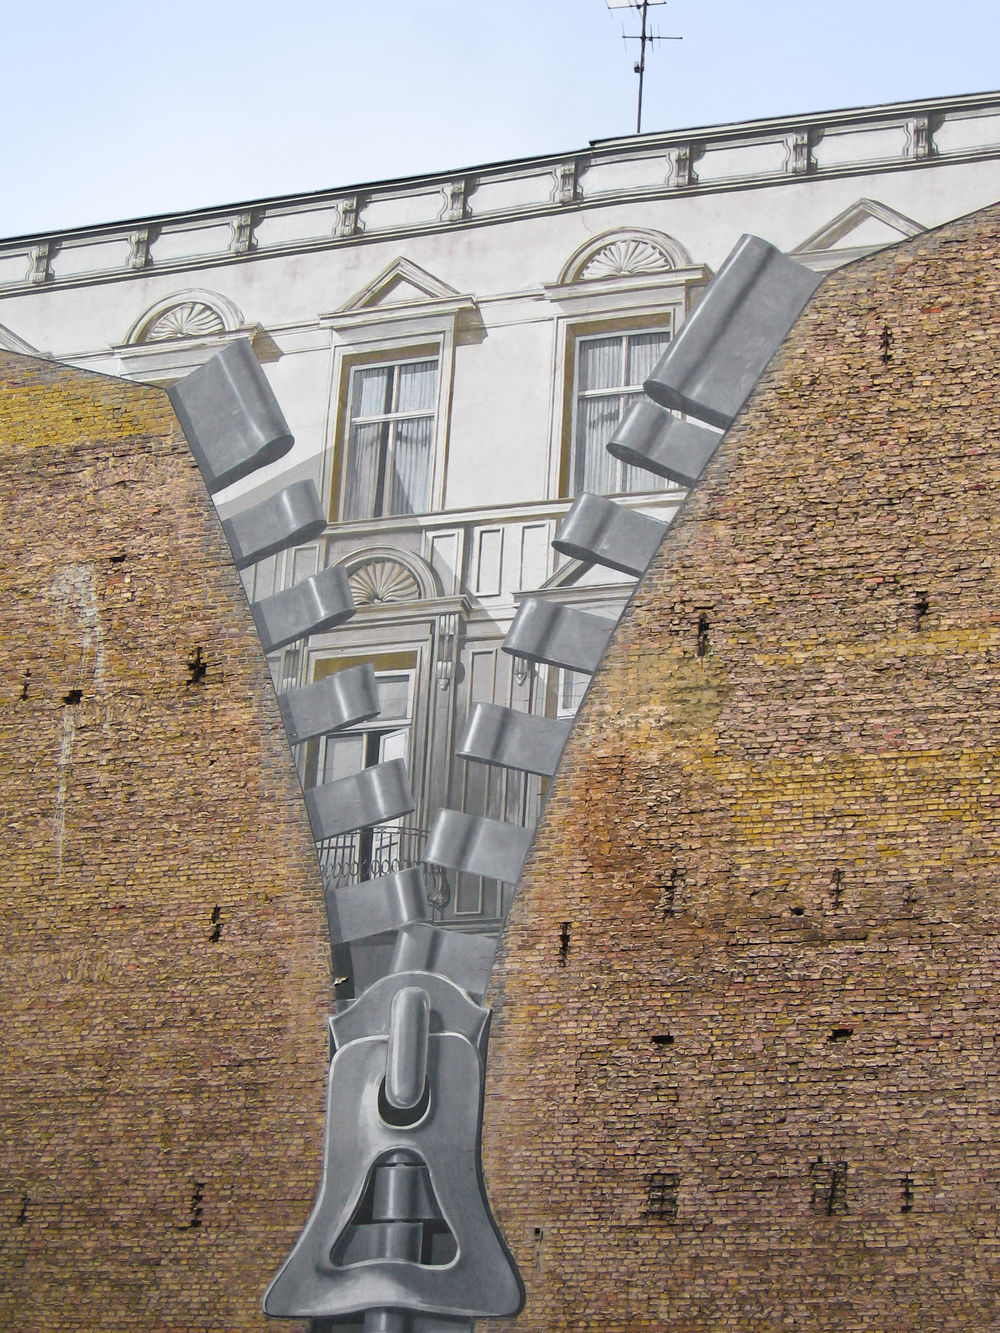 Brick wall with painting of a zipper opening up to reveal a building